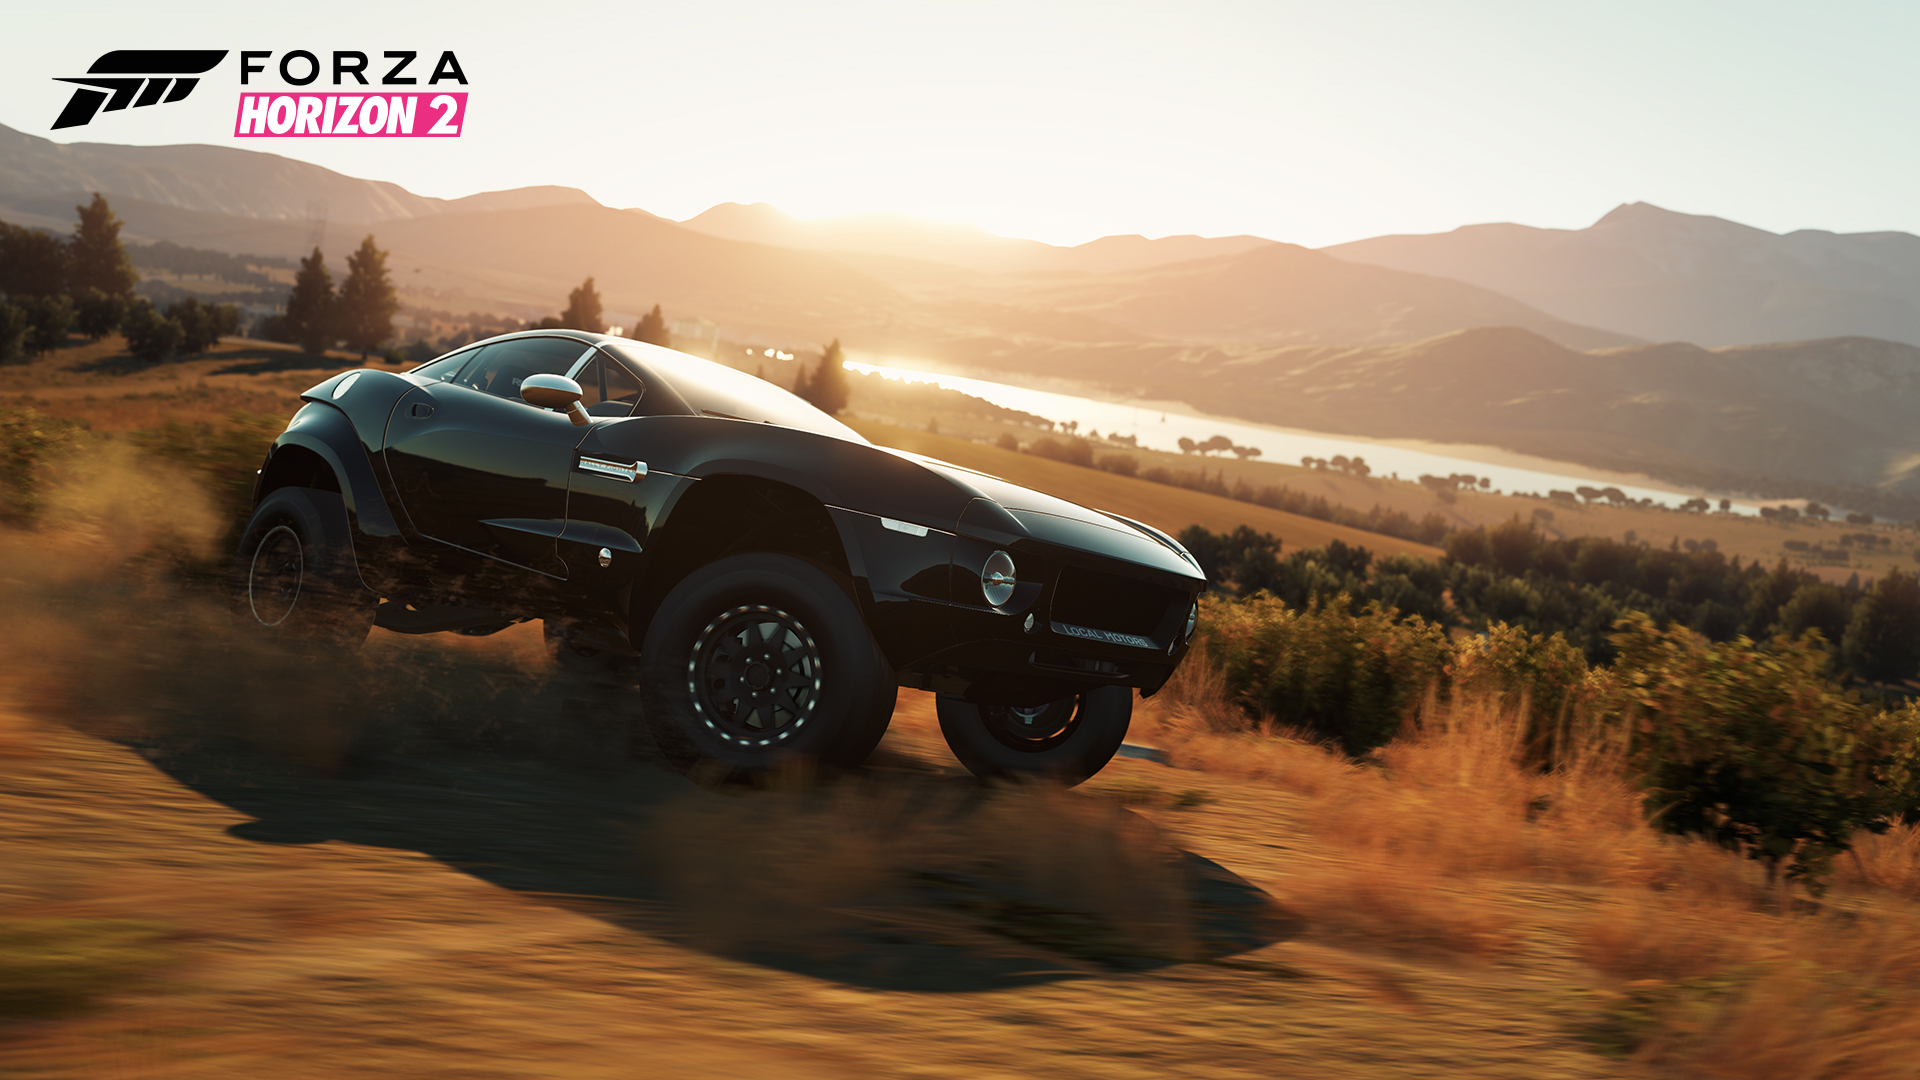 forza motorsport rewards in forza horizon 2. Black Bedroom Furniture Sets. Home Design Ideas